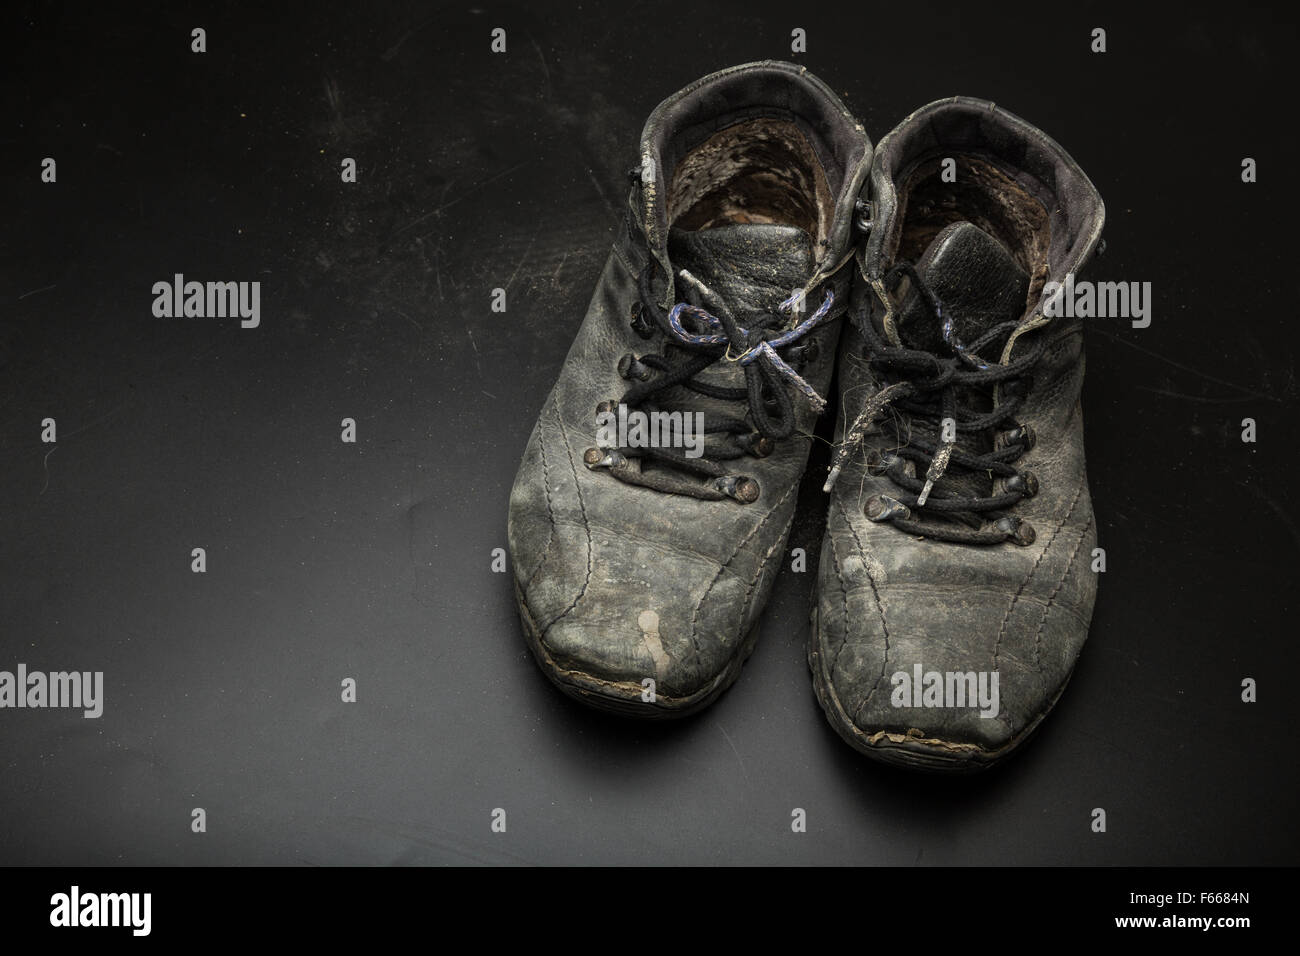 Old worn out shoes on the floor - Stock Image